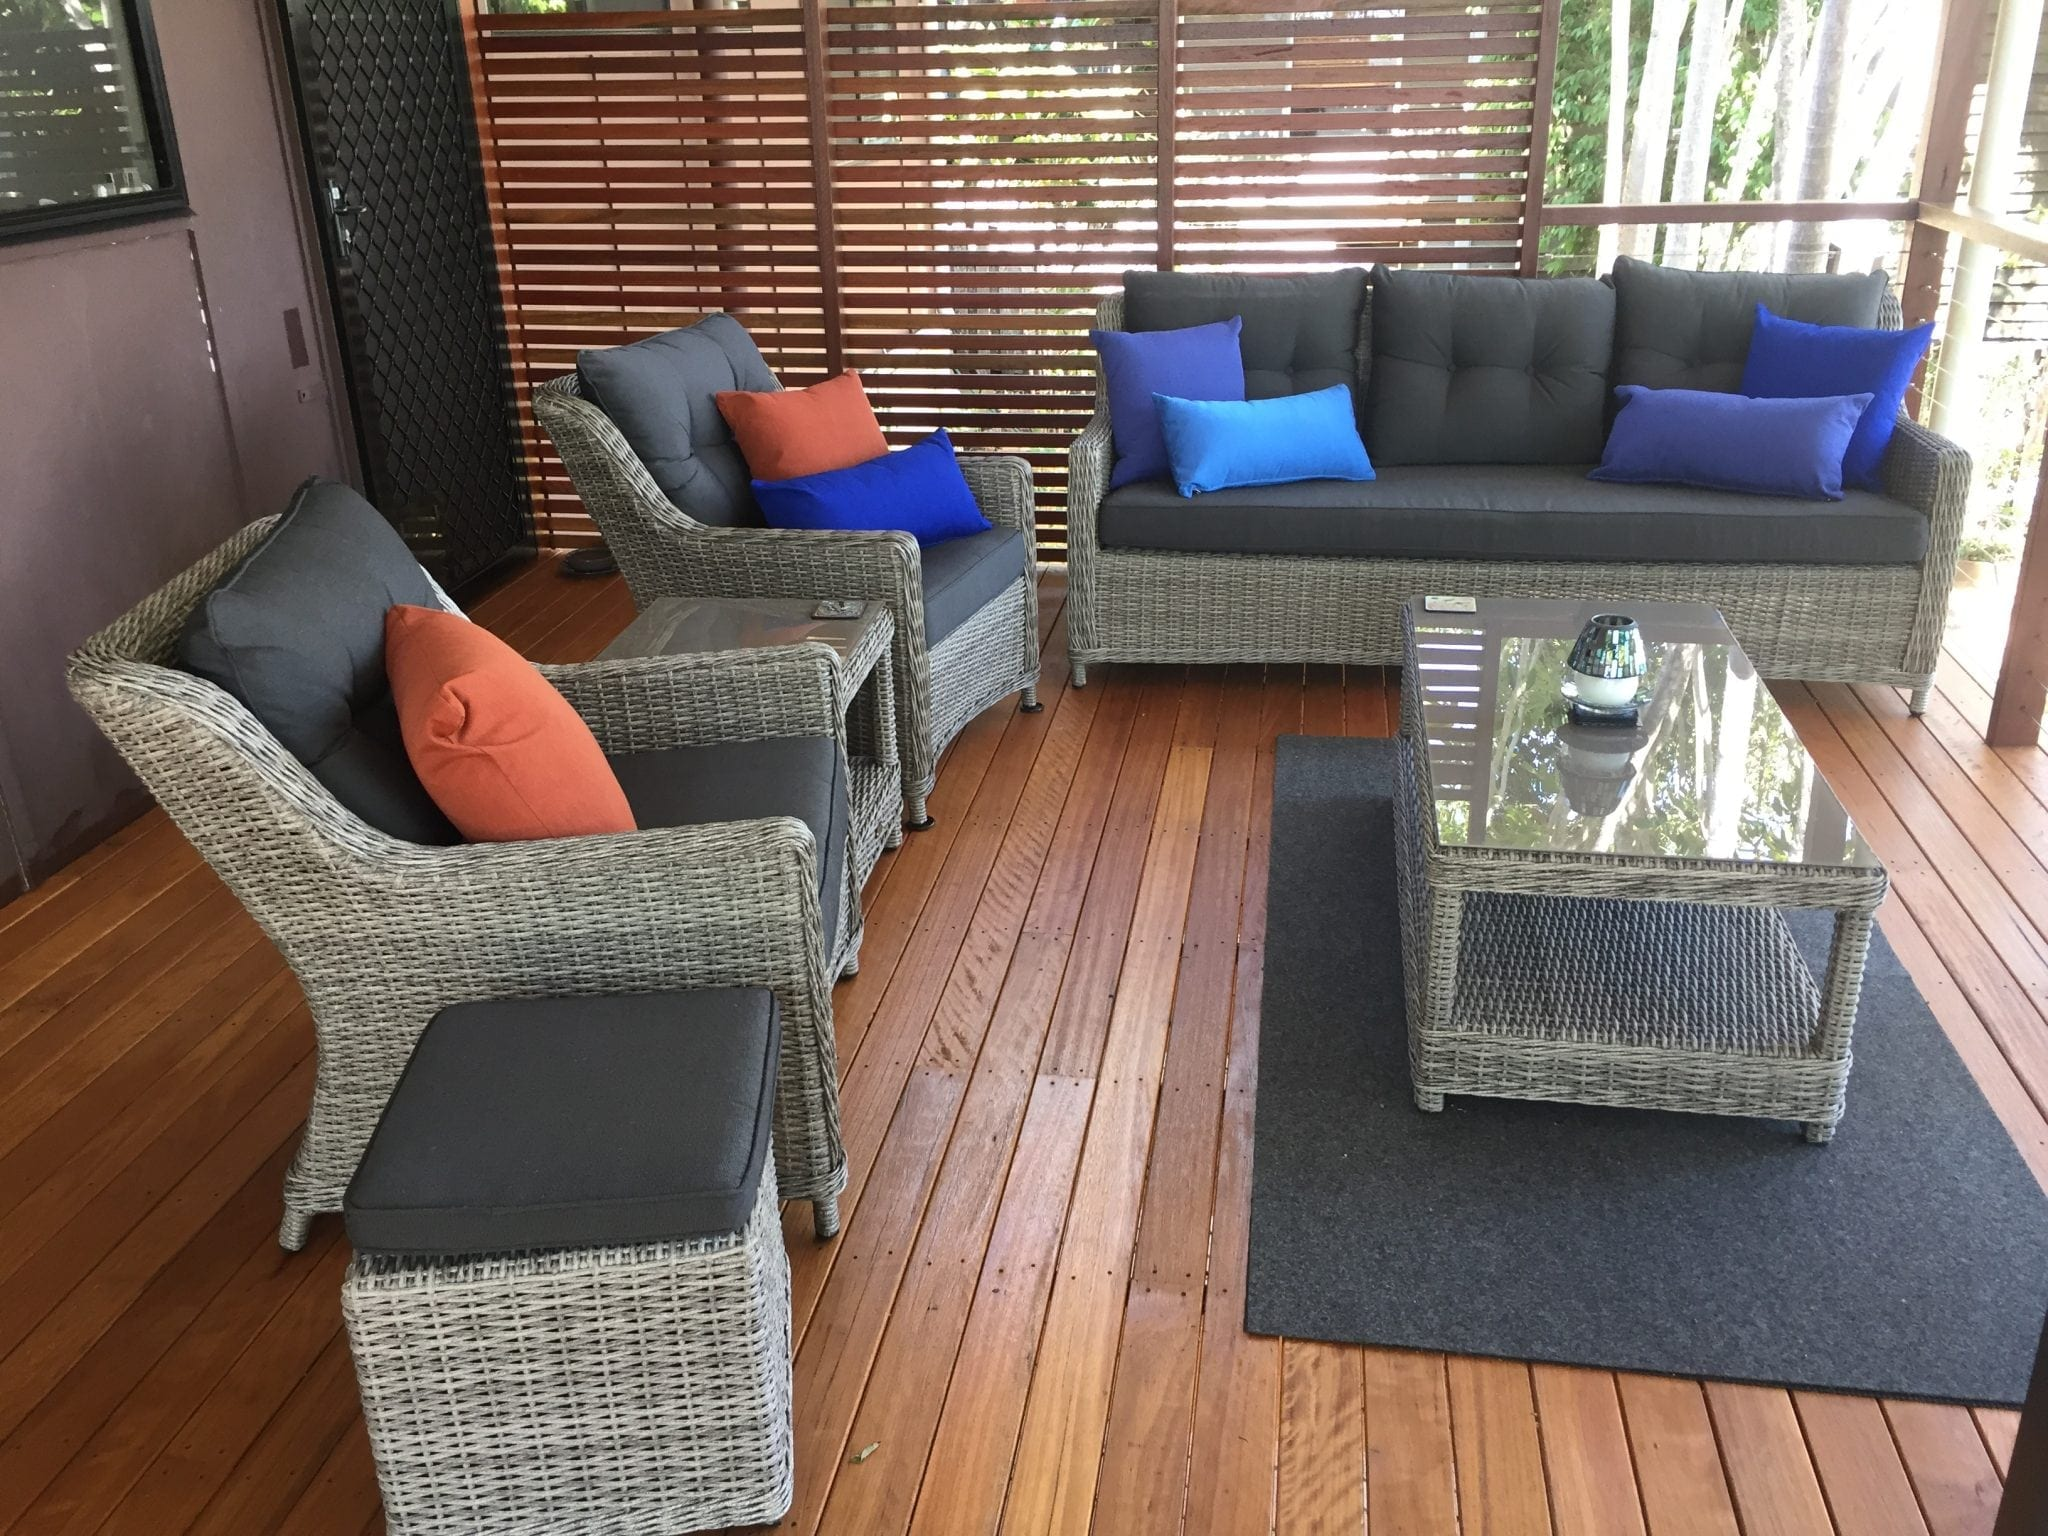 sunbrella outdoor cushions Sydney